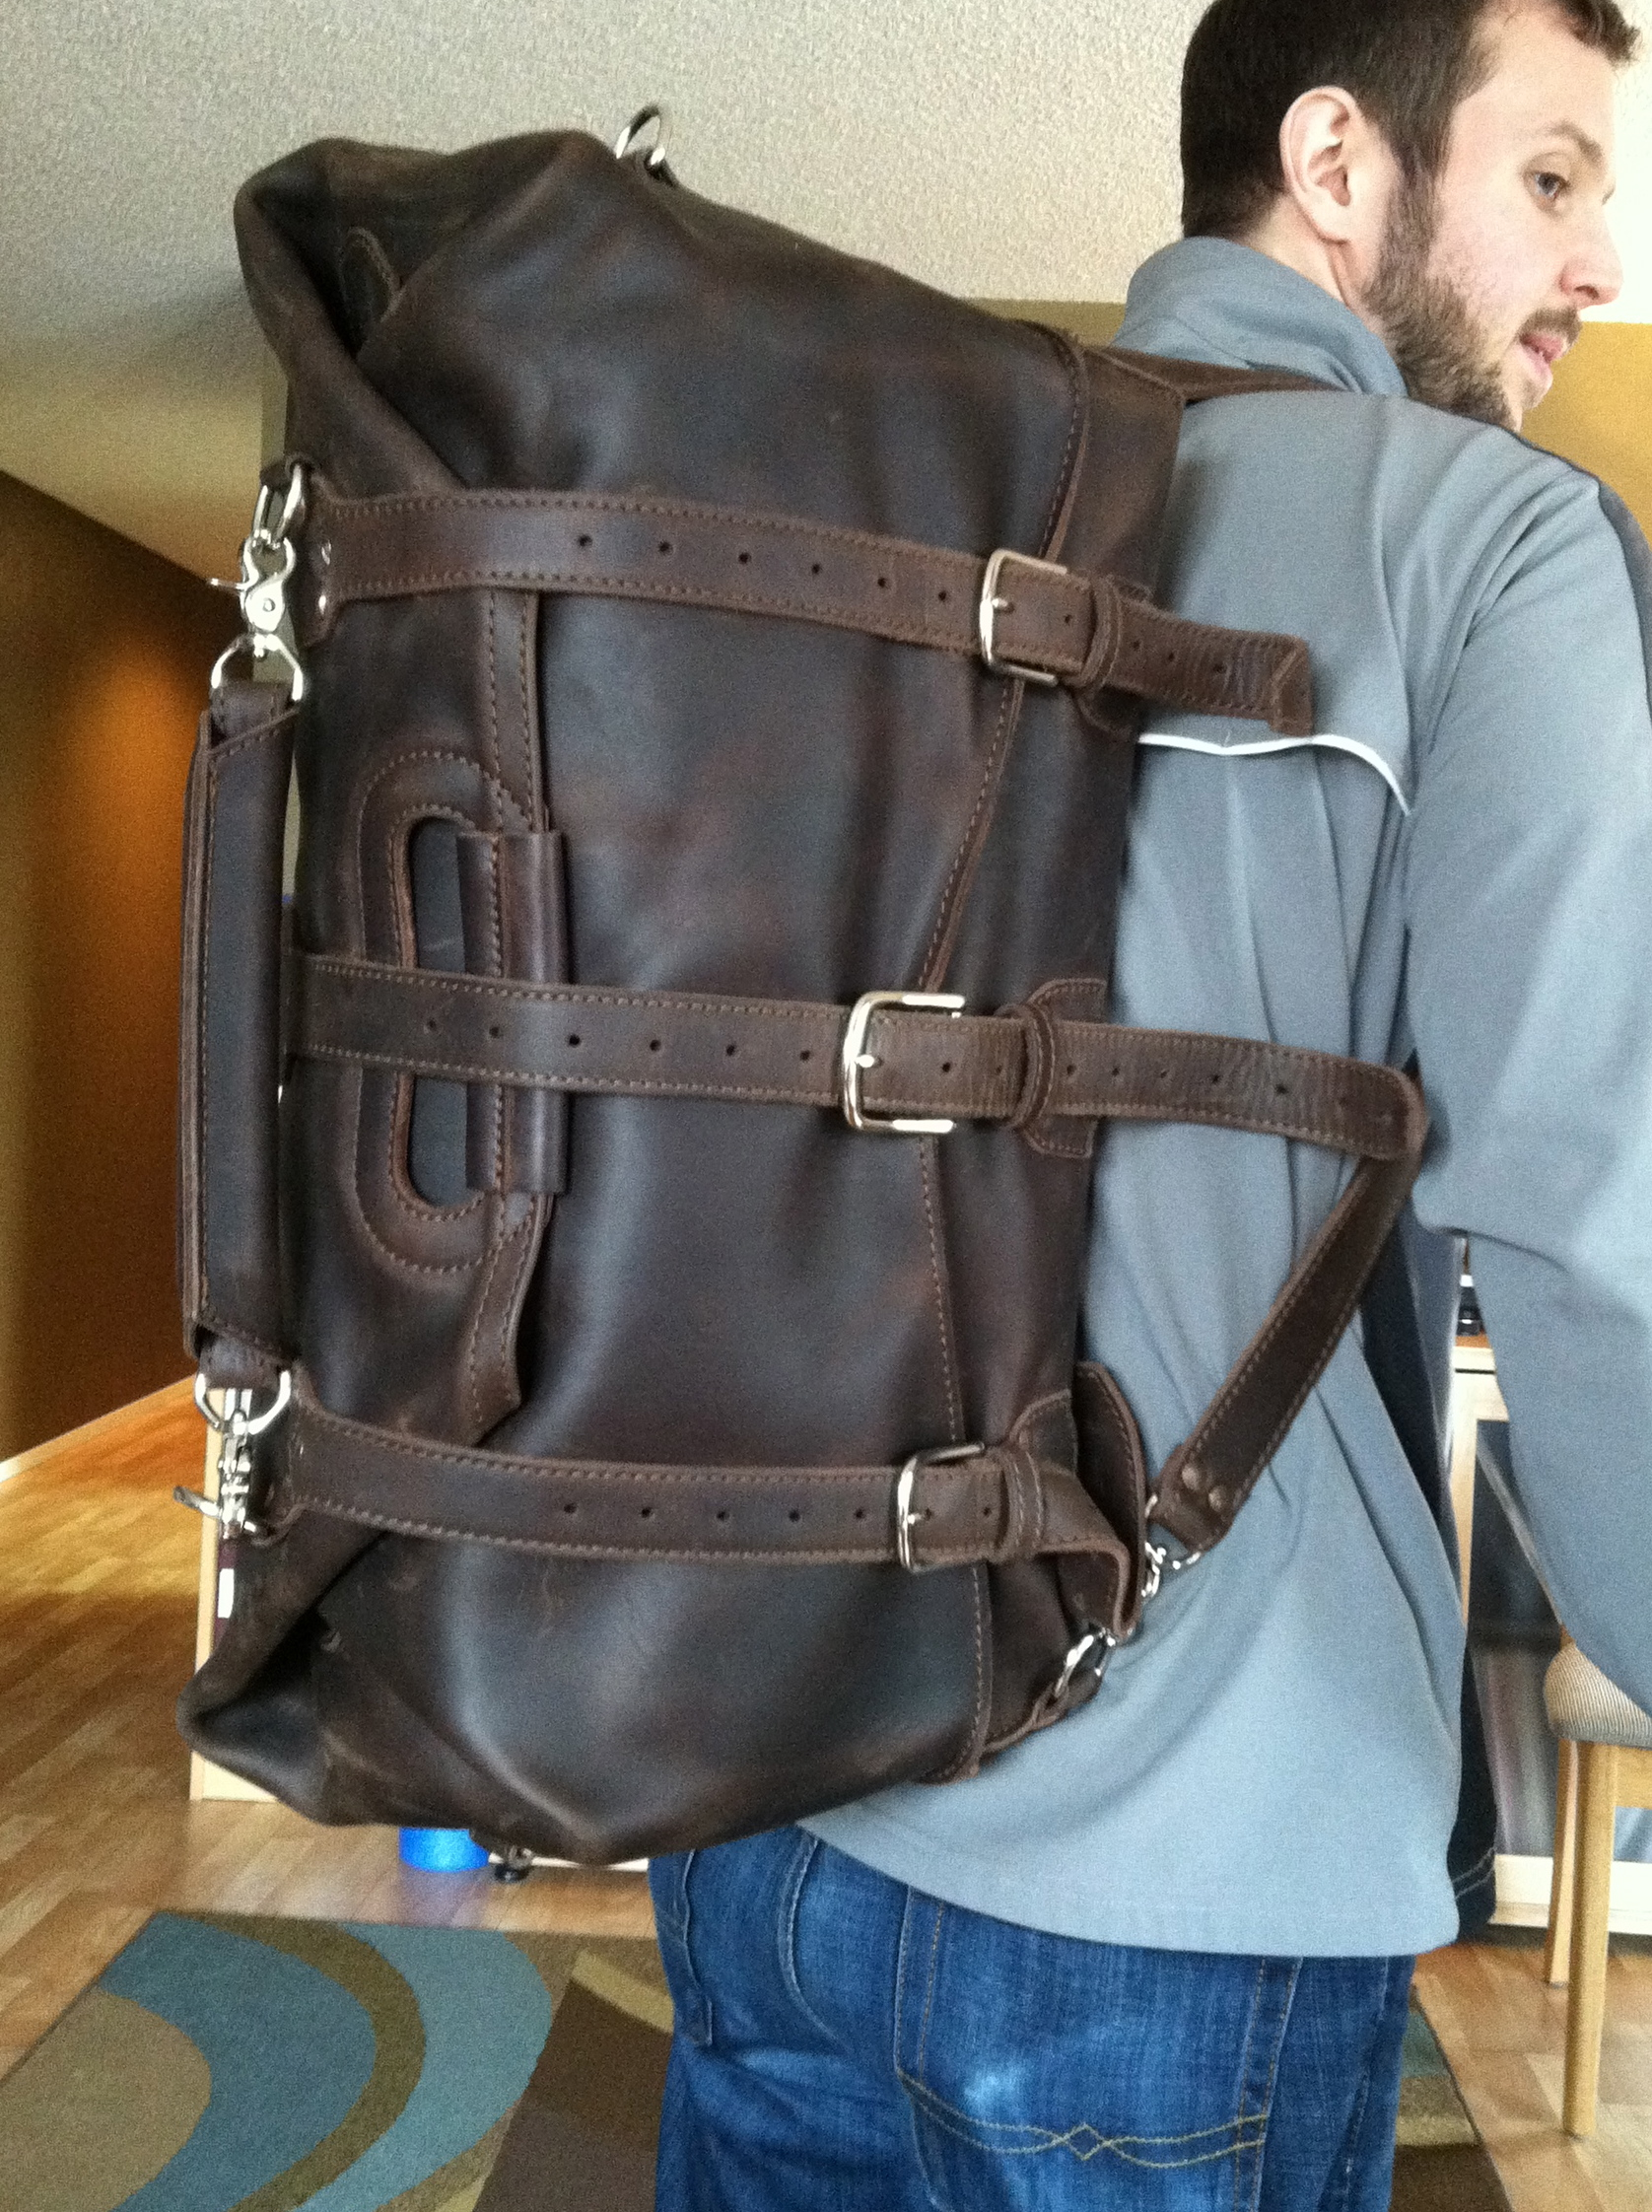 fcf188b999 The backpack configuration ...